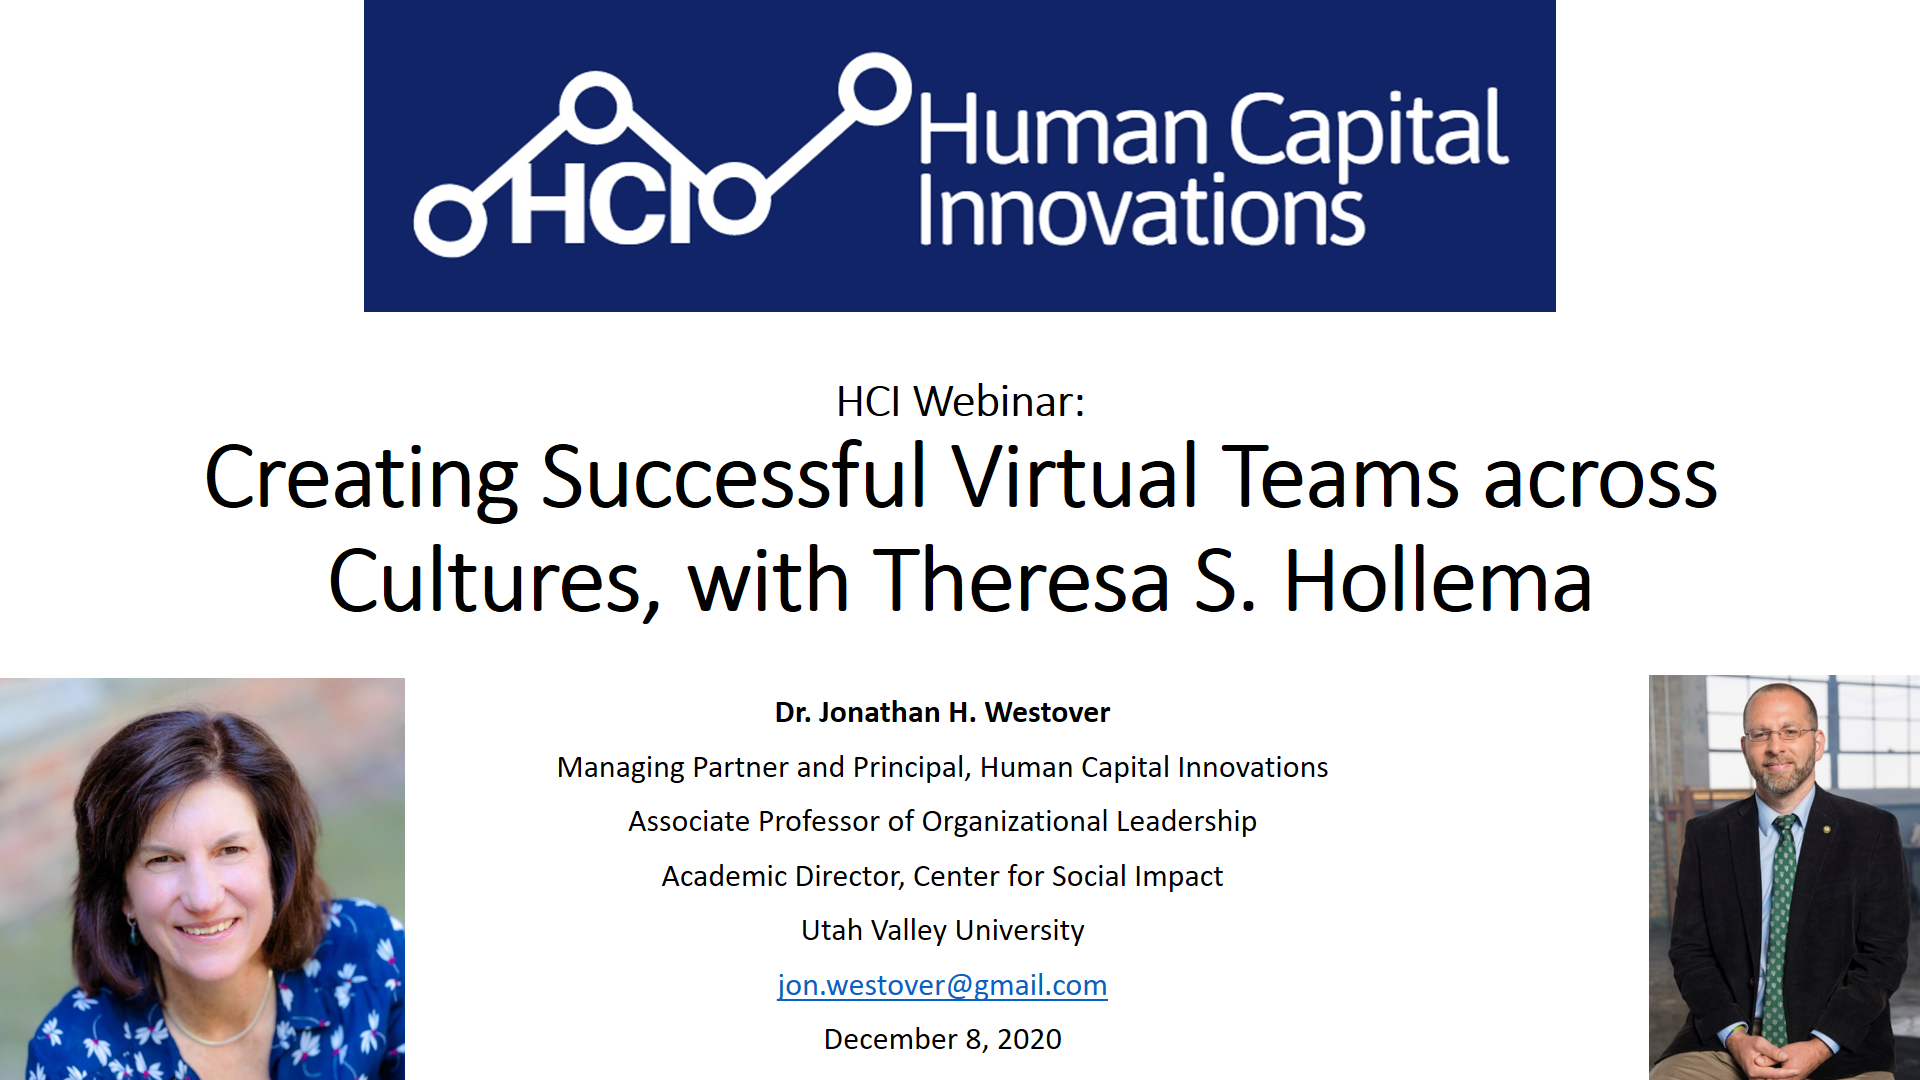 Creating Successful Virtual Teams across Cultures